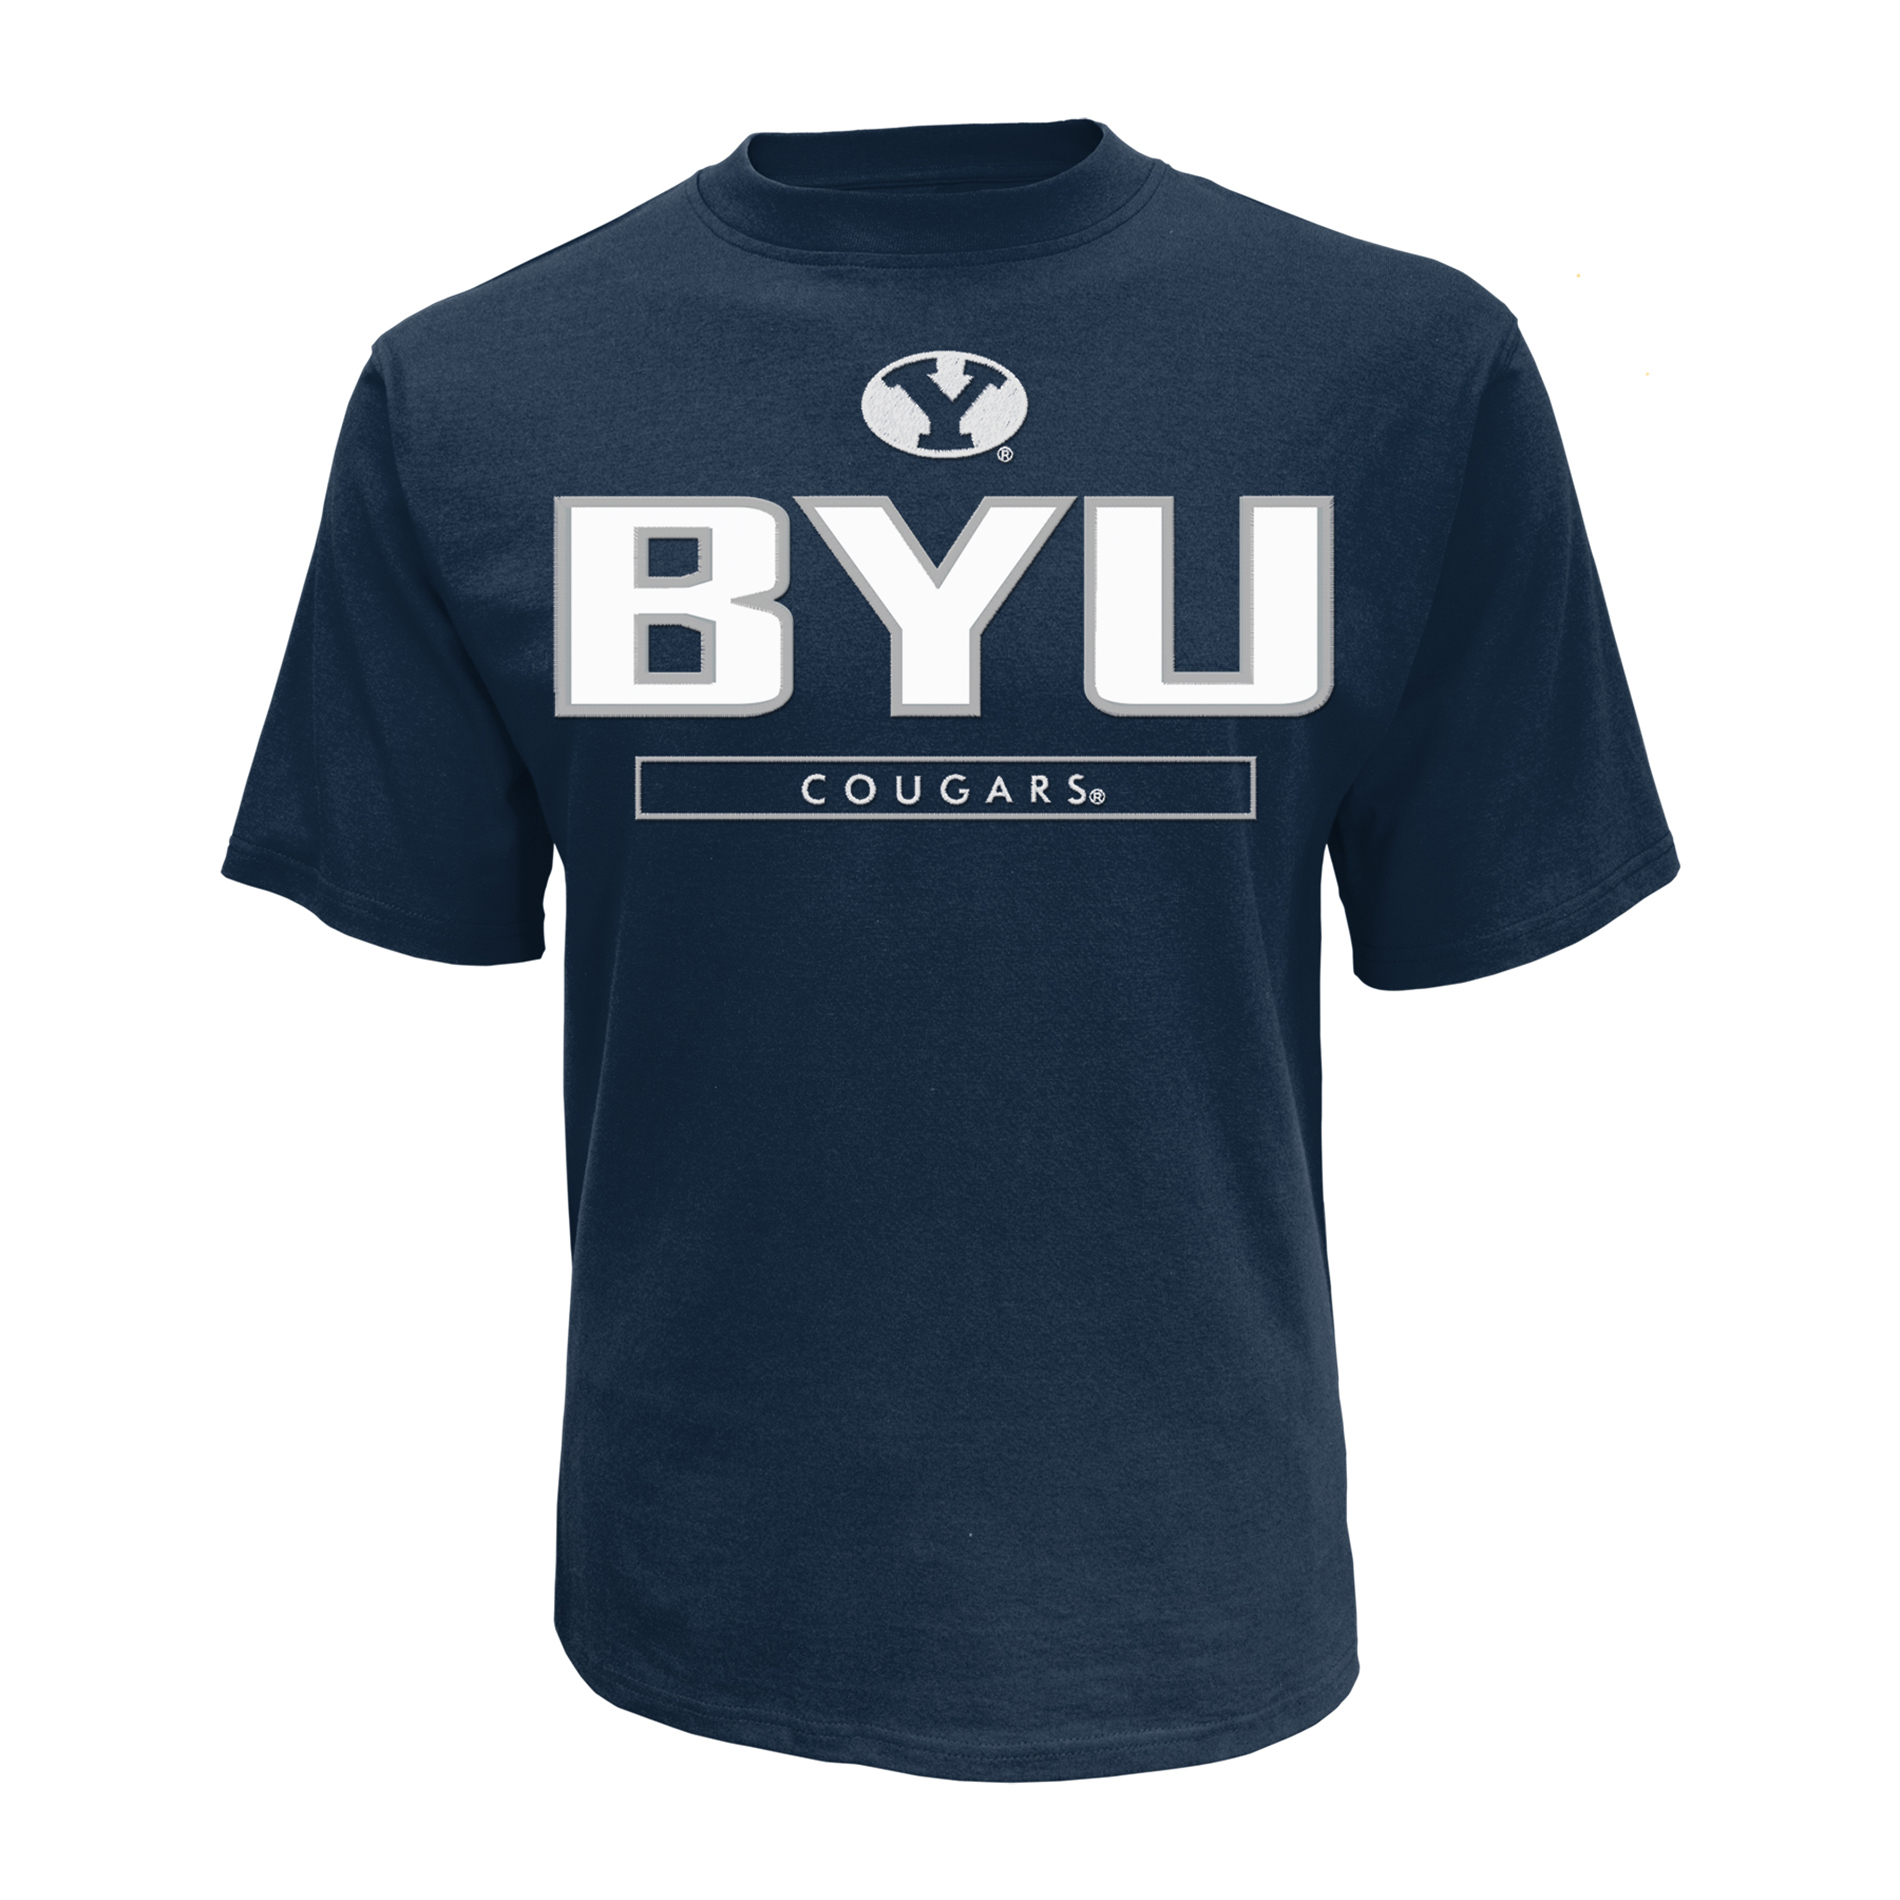 petite NCAA Men's Applique Short-Sleeve T-Shirt - BYU Cougars, Size: XL